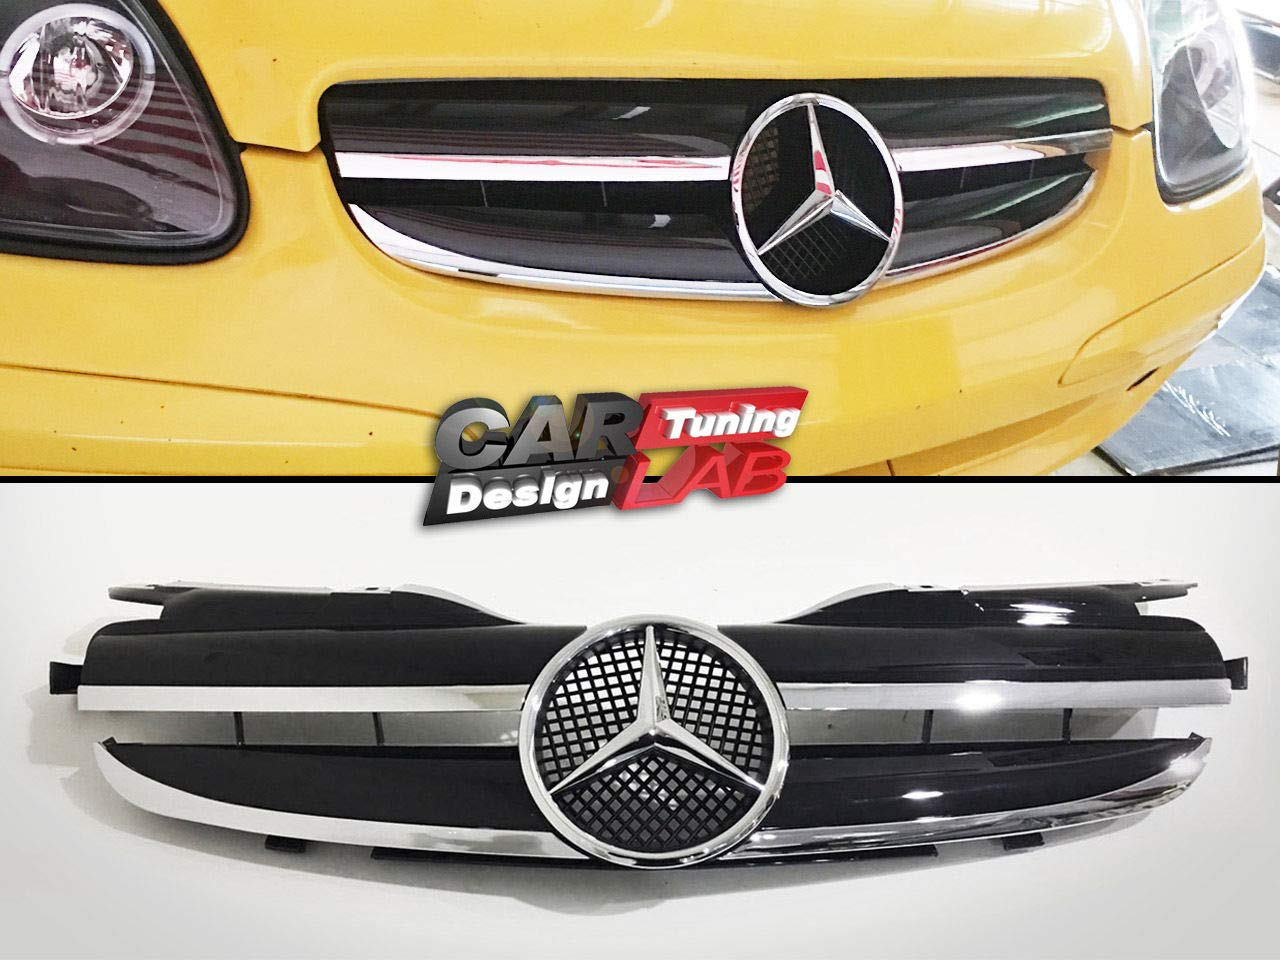 CarLab (1) Front Grille Grill 2 FIN (1 FIN LOOK) For 97~04 R170 SLK 230 320